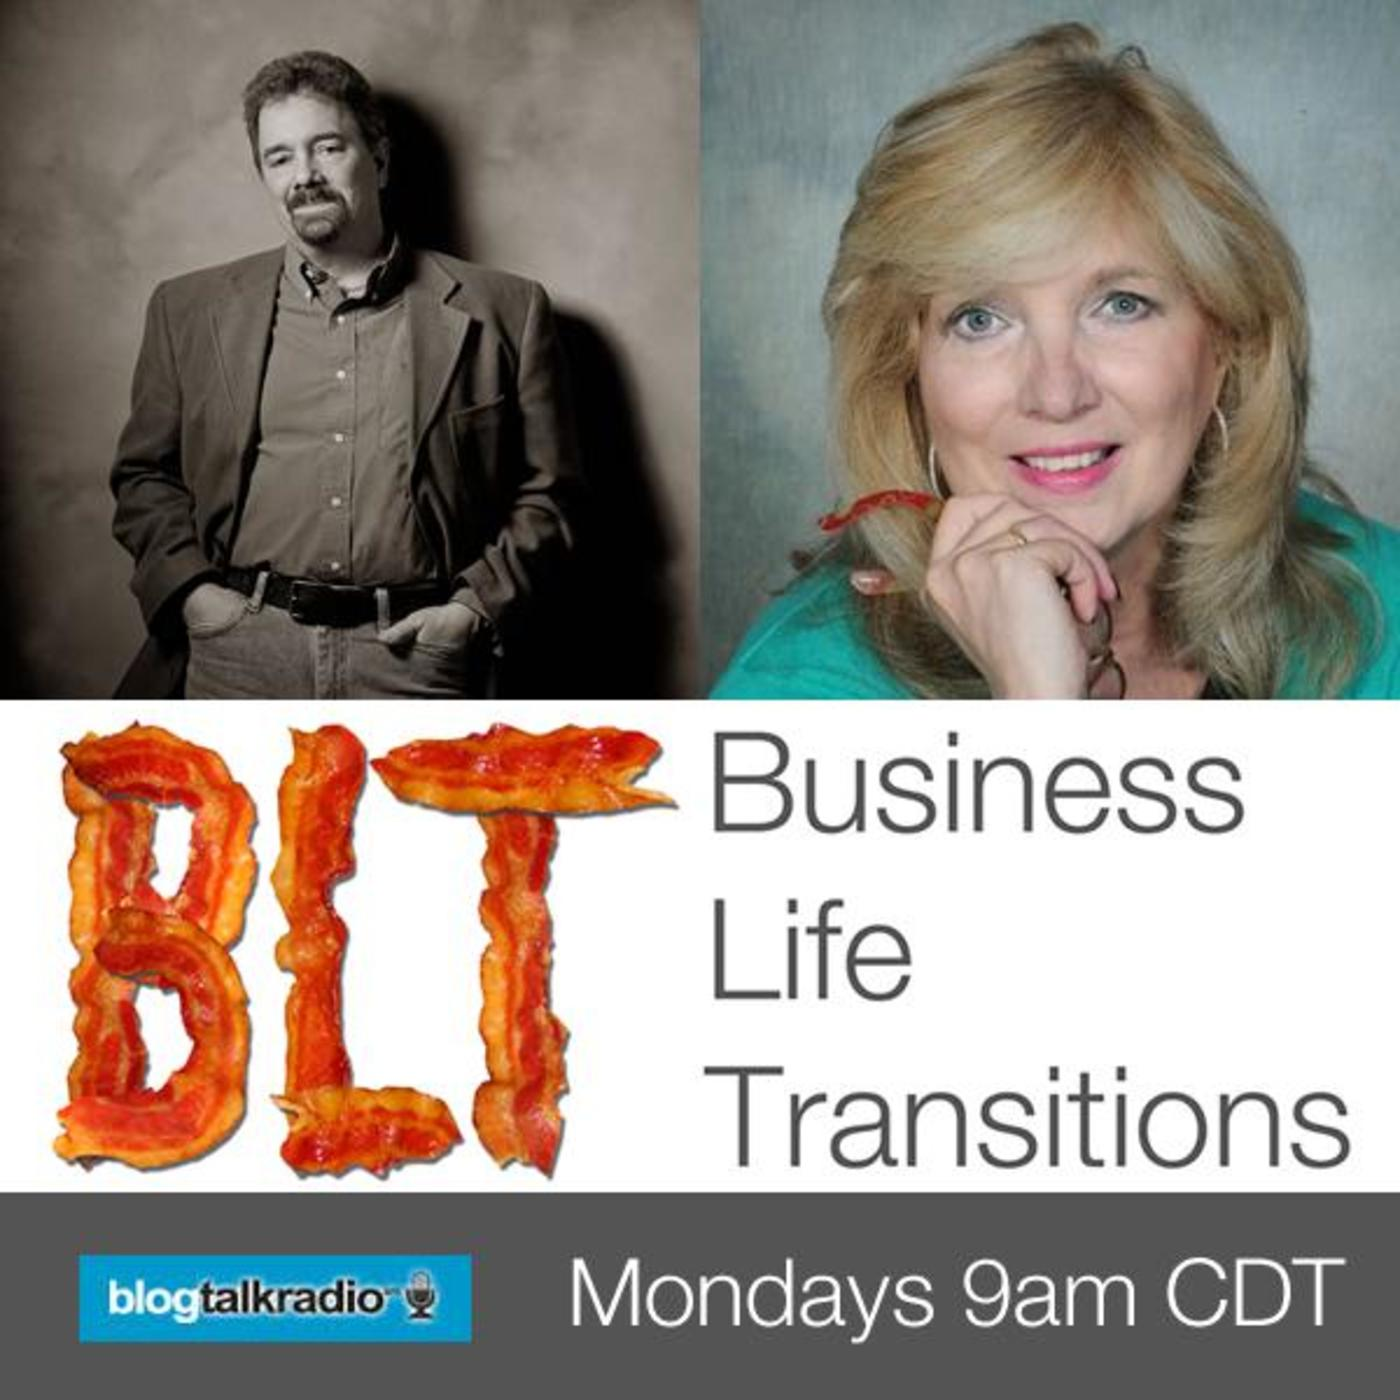 Business Life Transitions